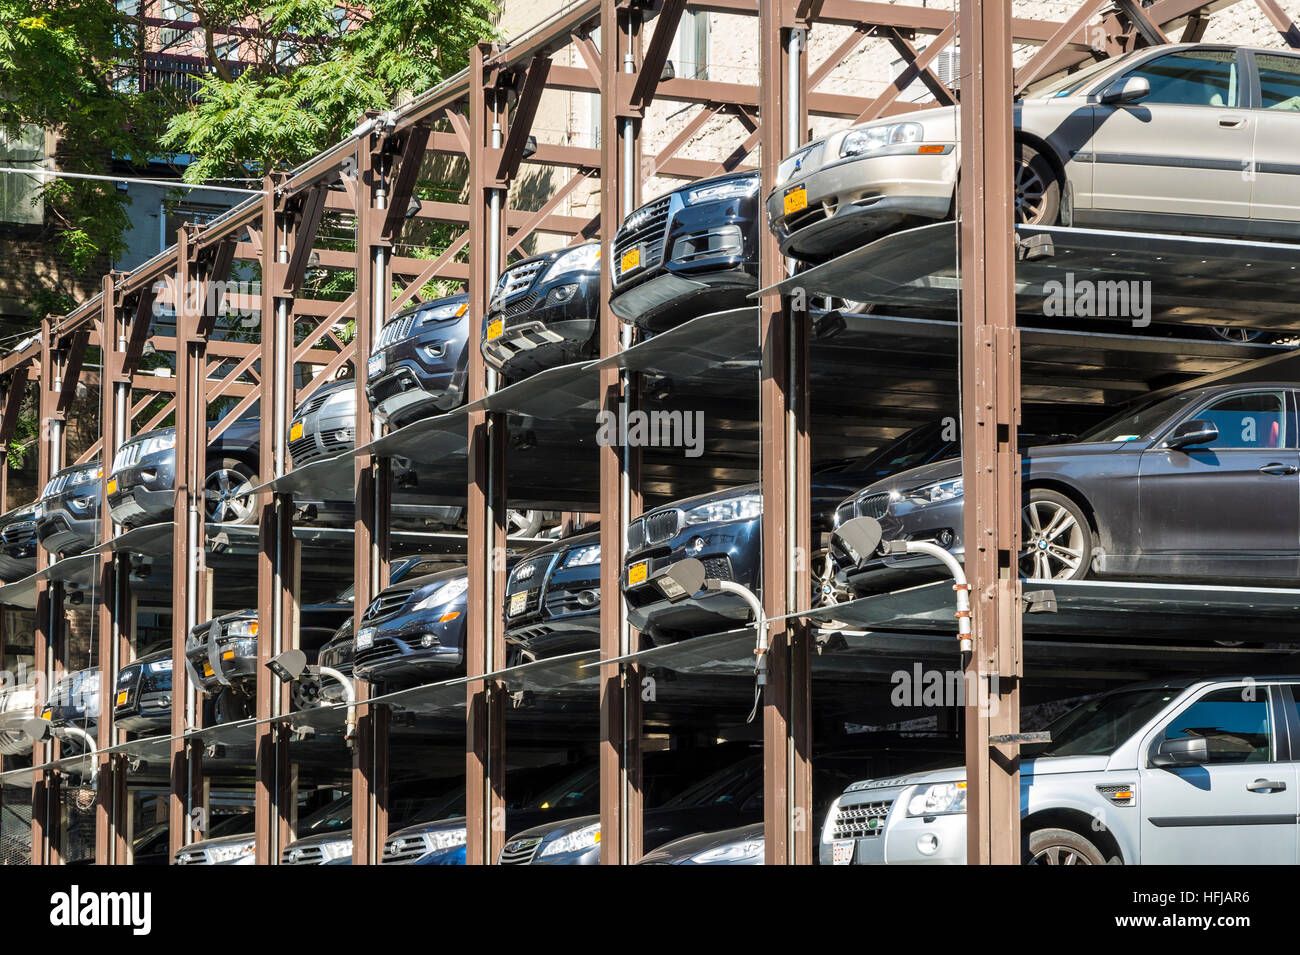 Vertical mechanical stacked parking lot in New York, USA - Stock Image